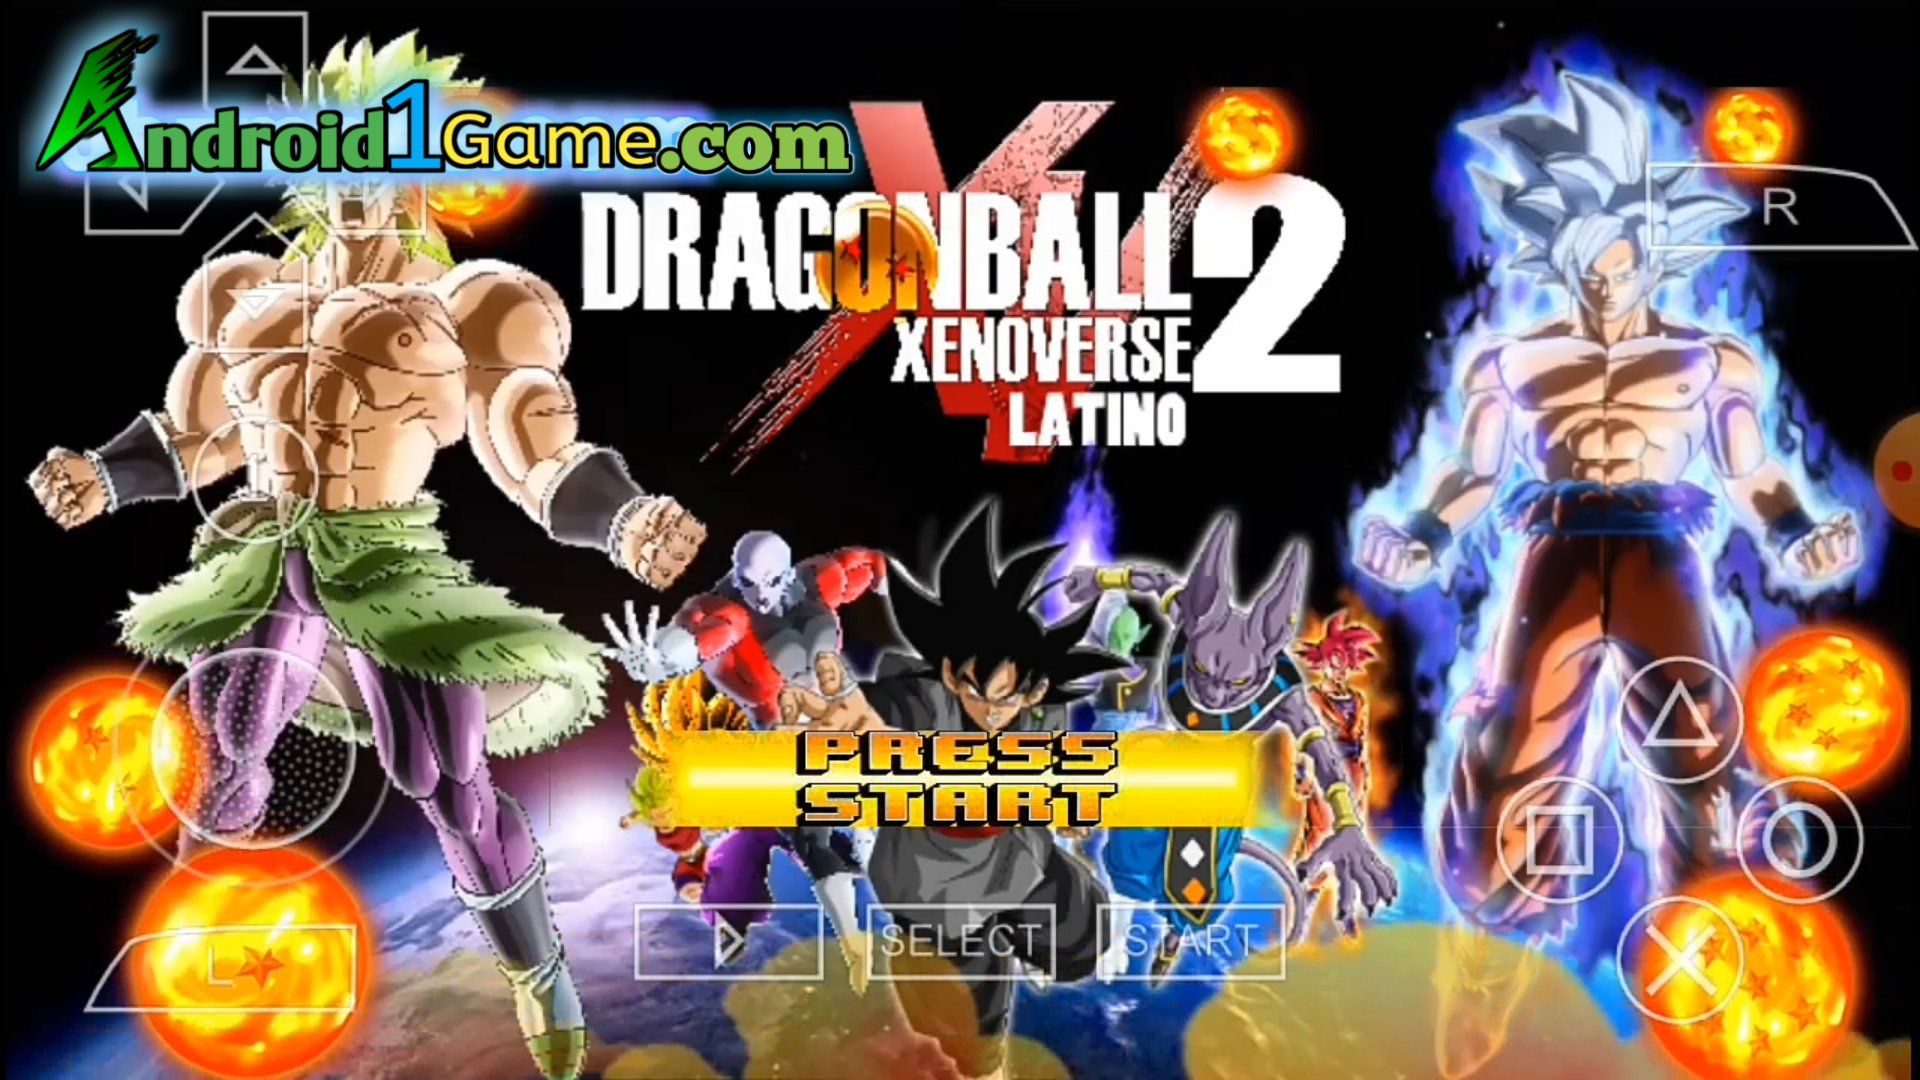 Dragon ball Z Game Xenoverse 2 For Android PSP ISO